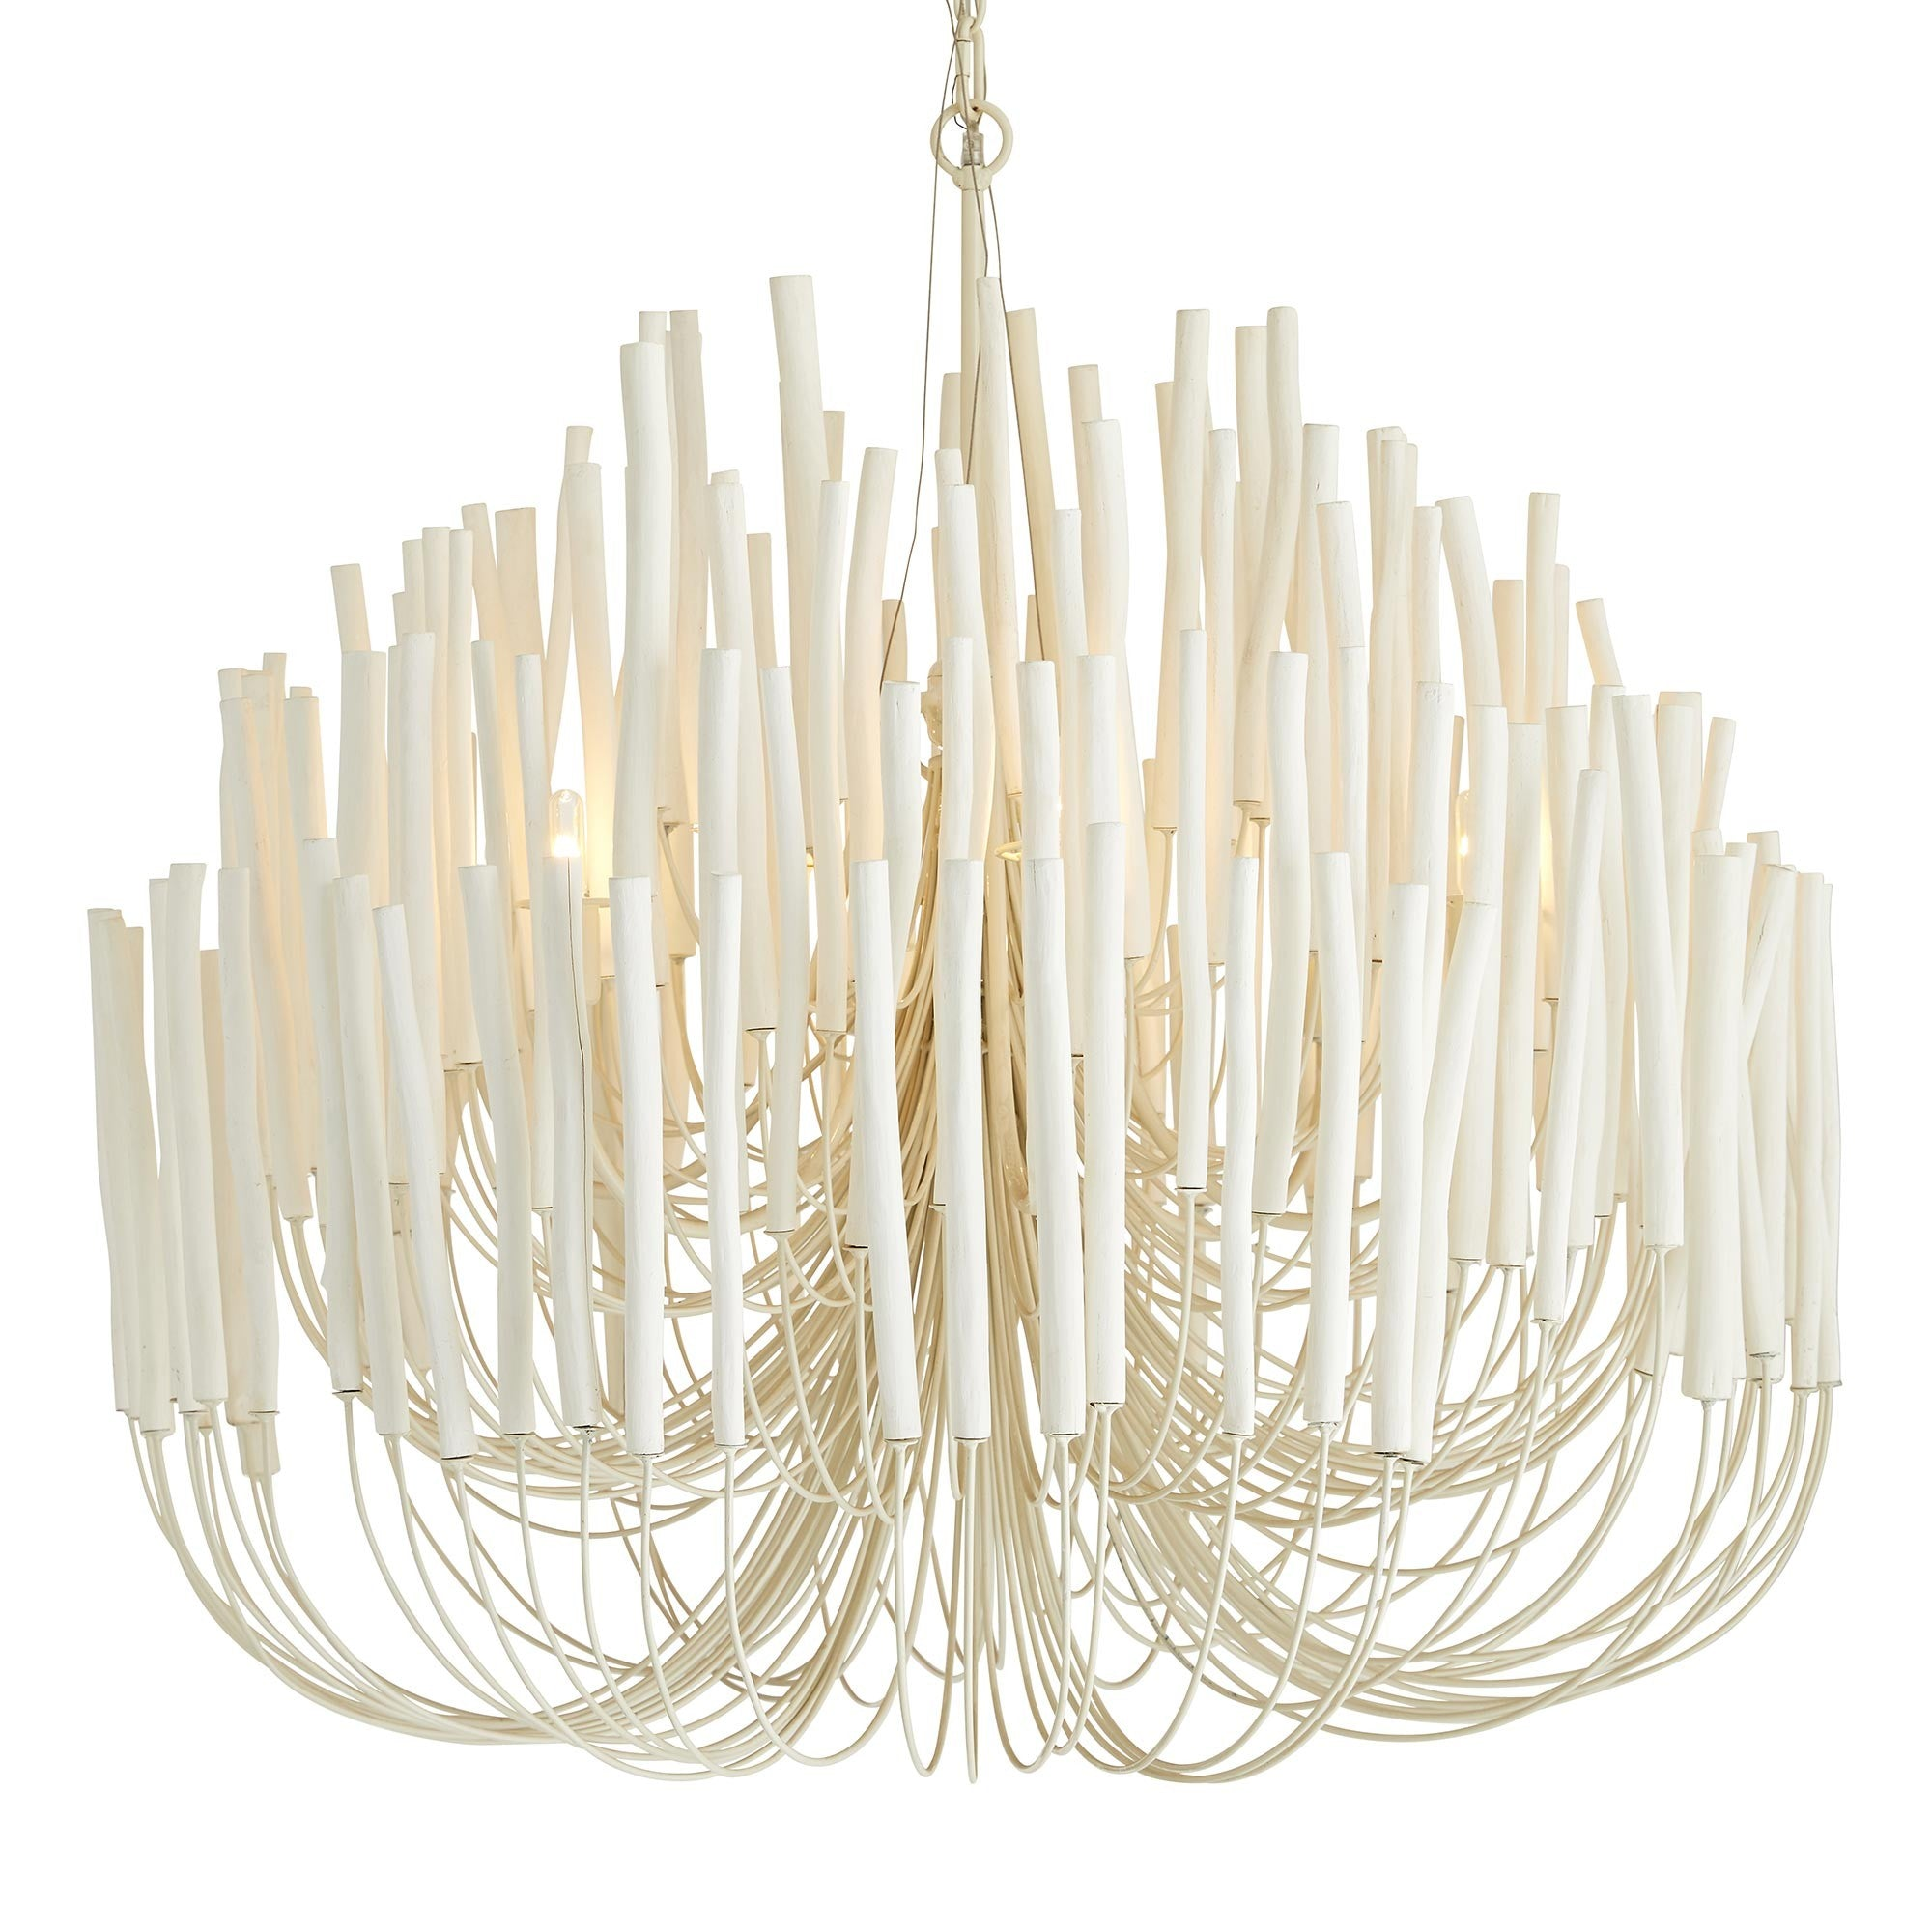 Twiggy XL Chandelier